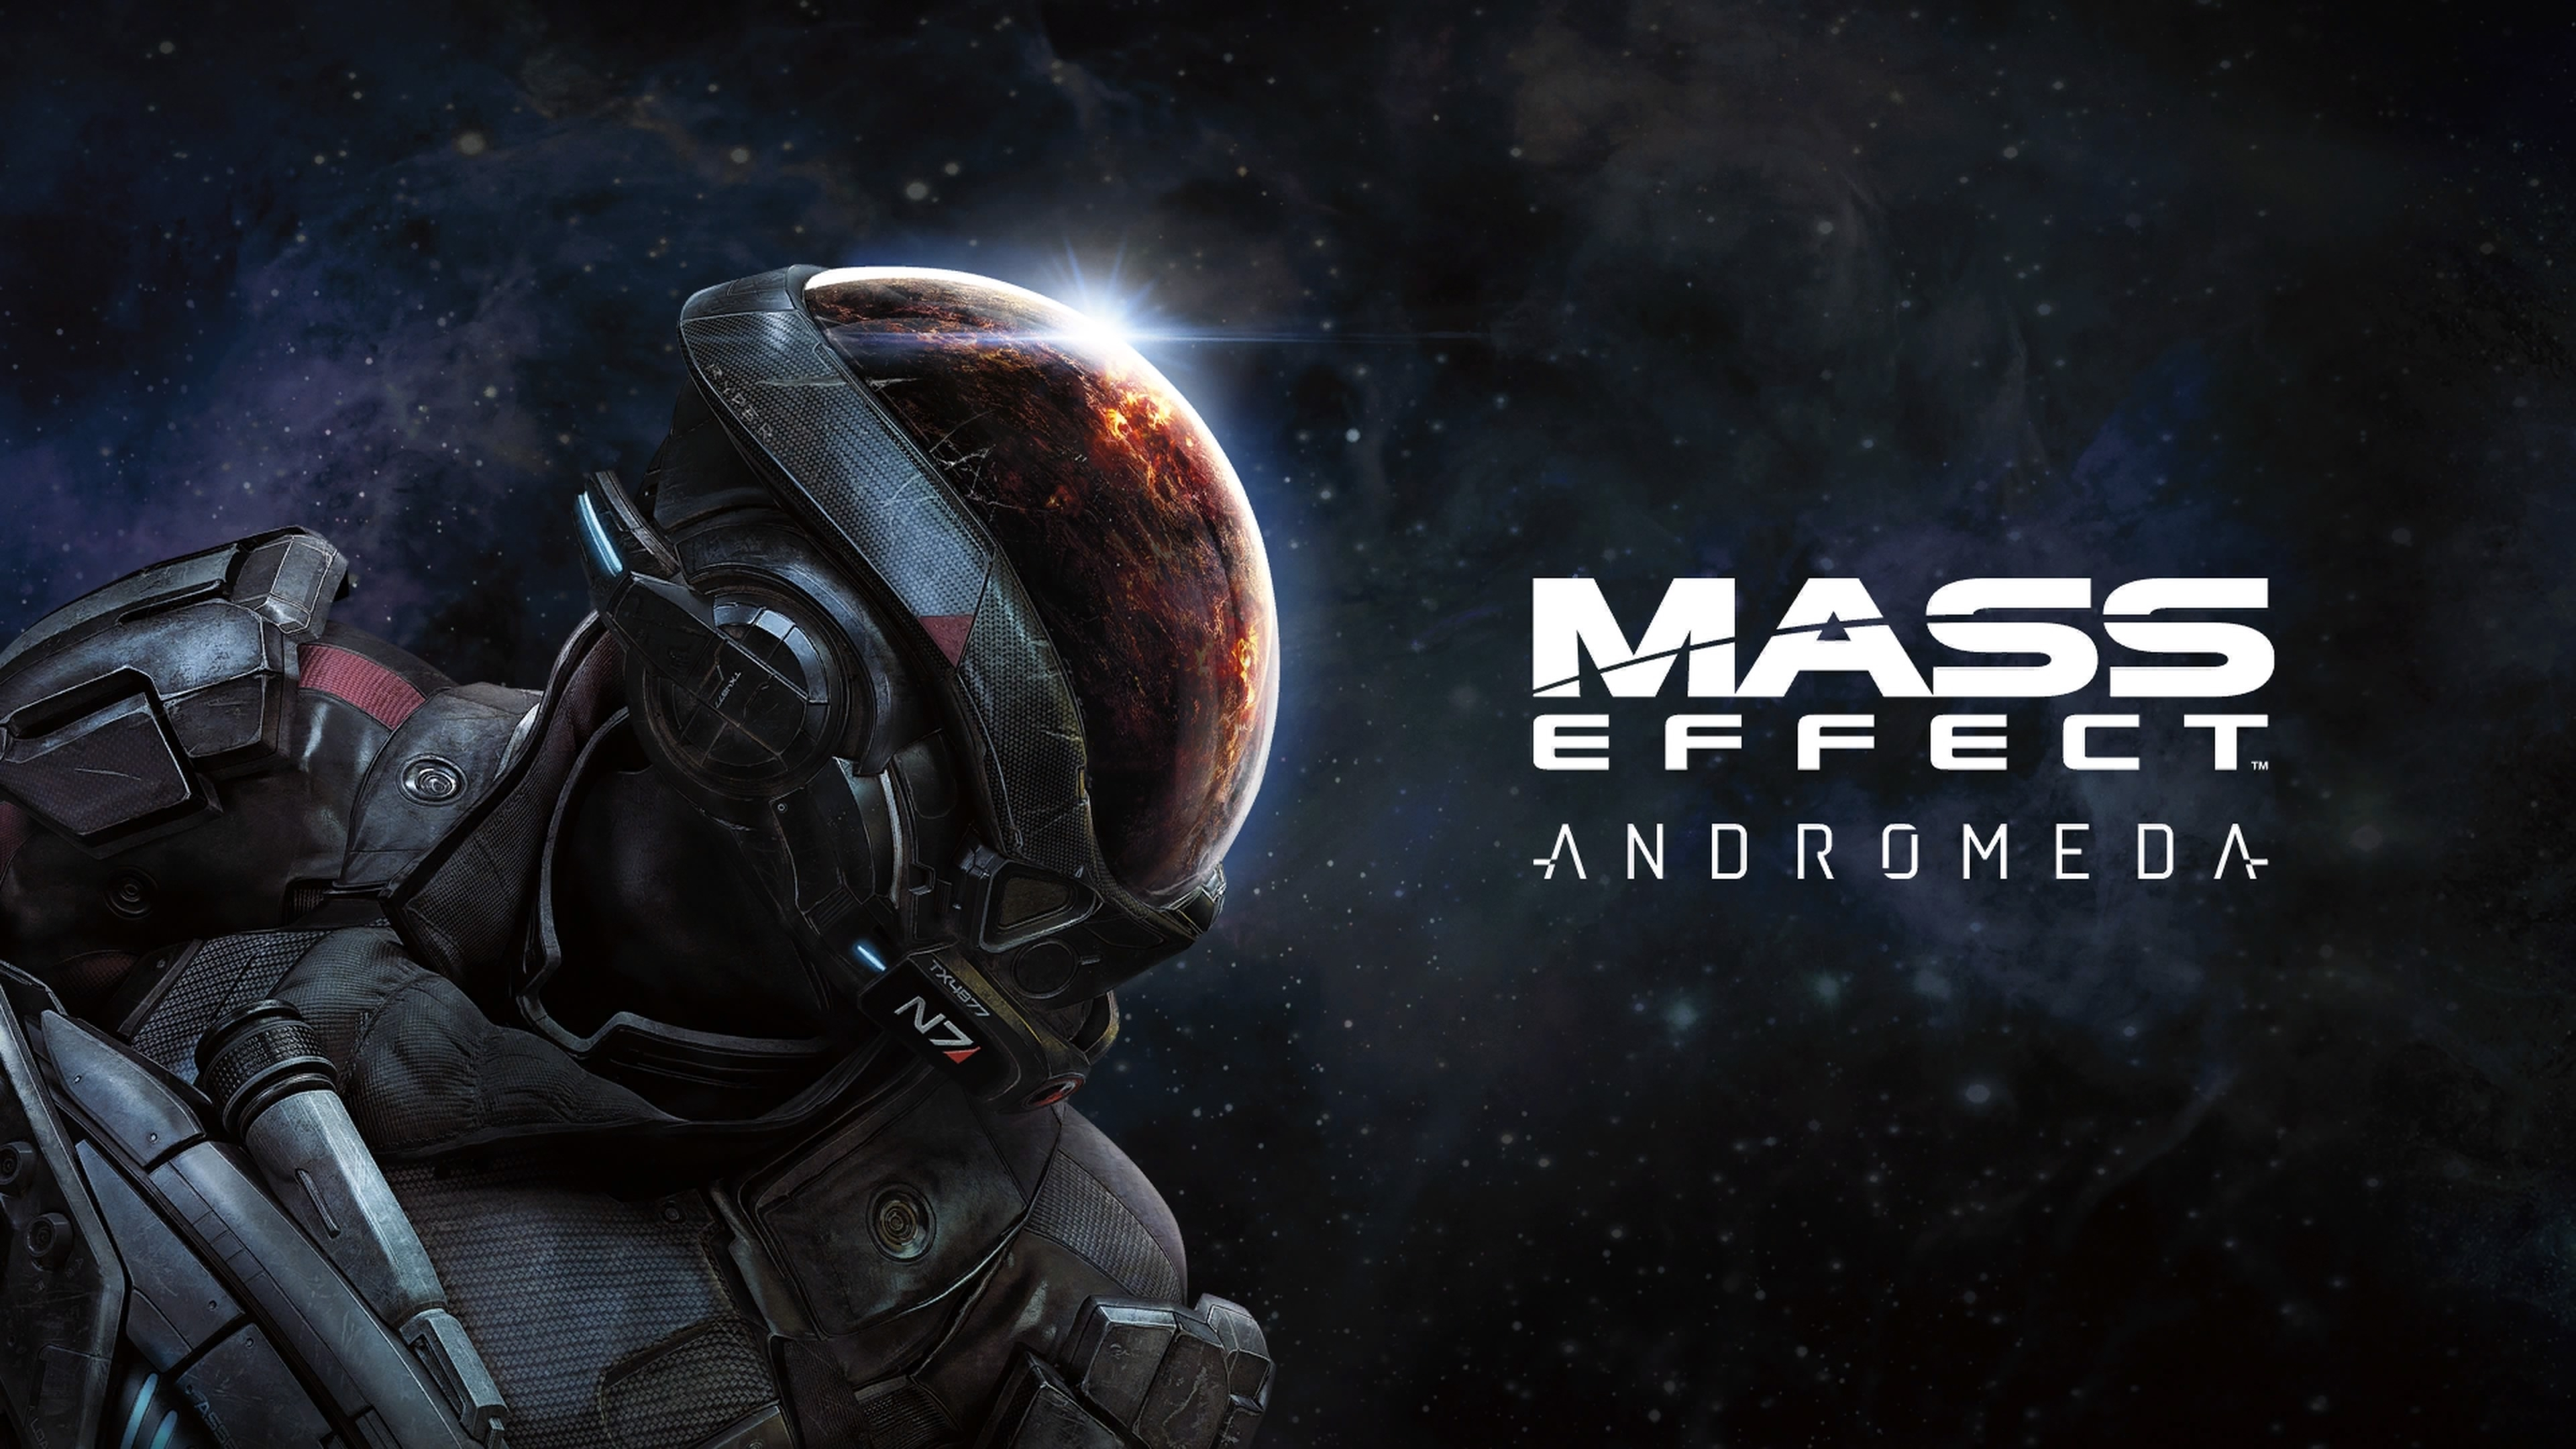 10 Top Mass Effect Android Wallpaper FULL HD 1080p For PC